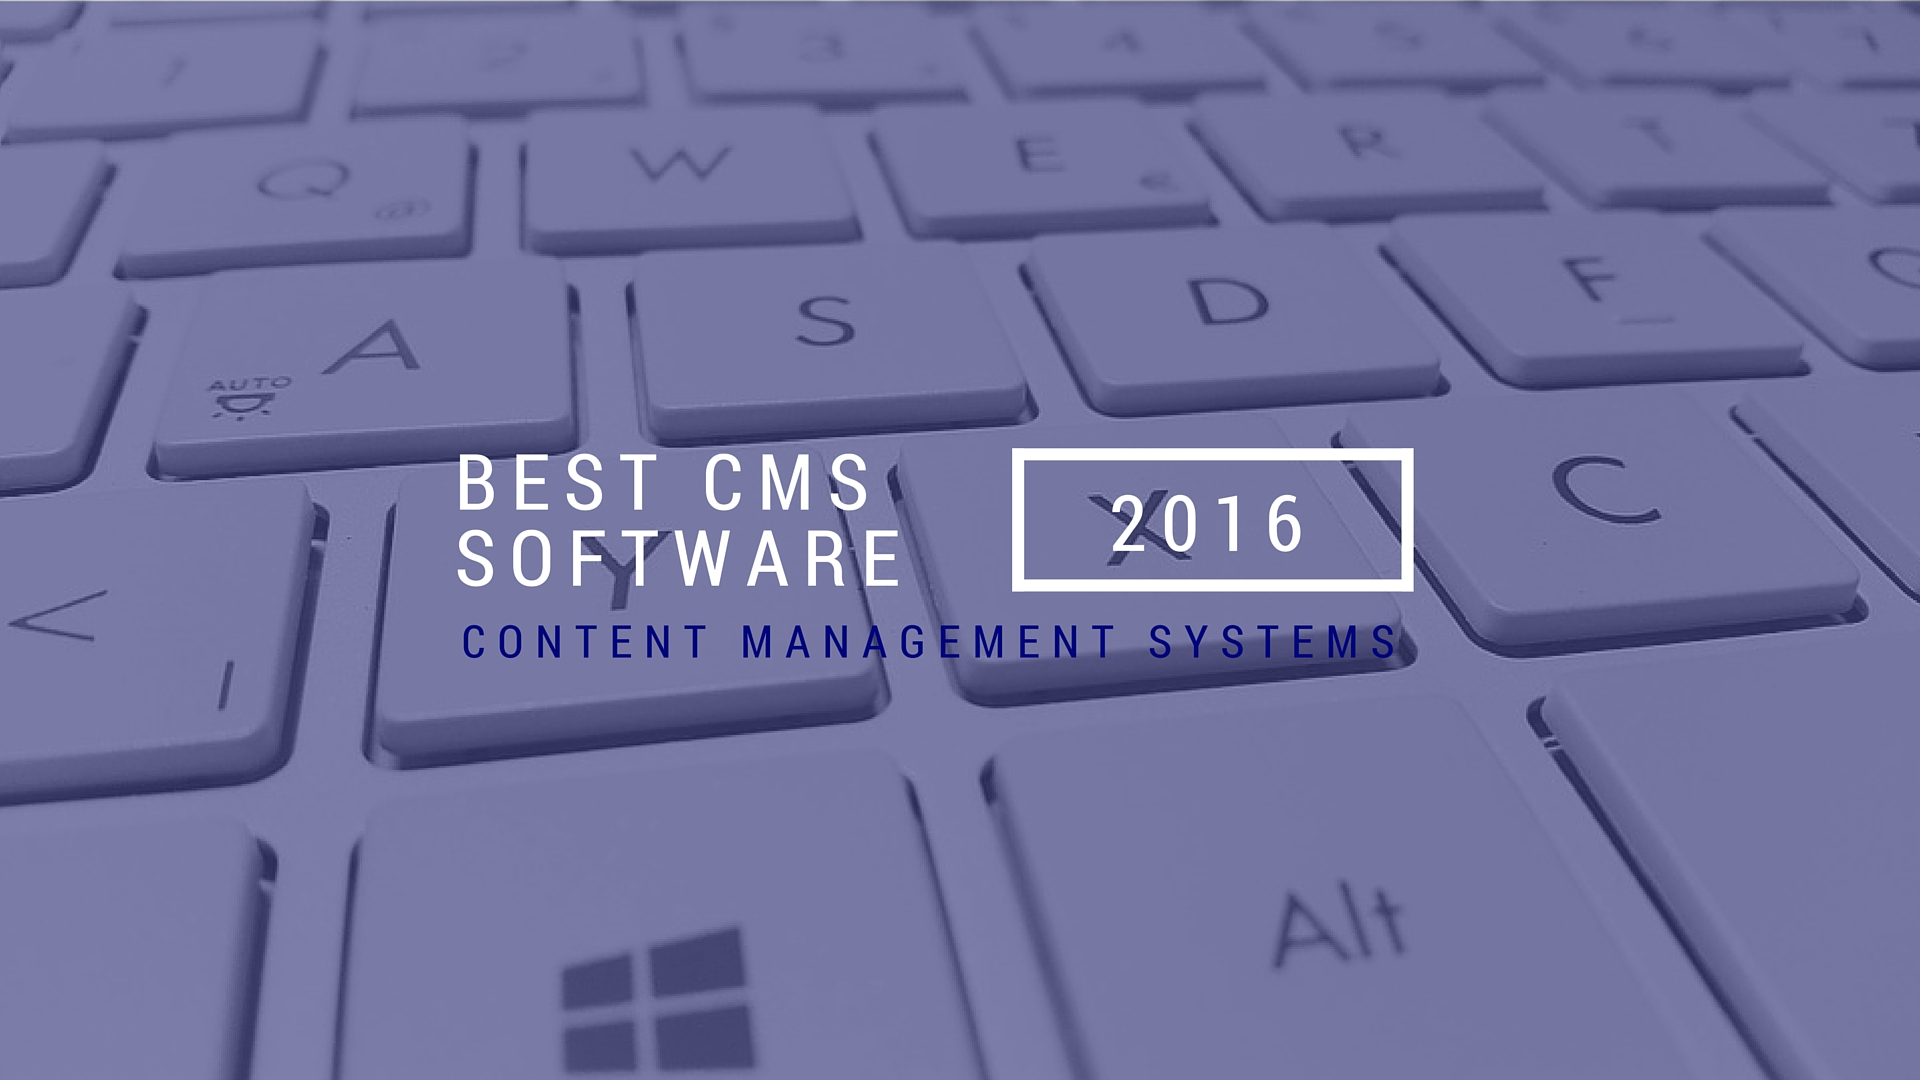 Top CMS software